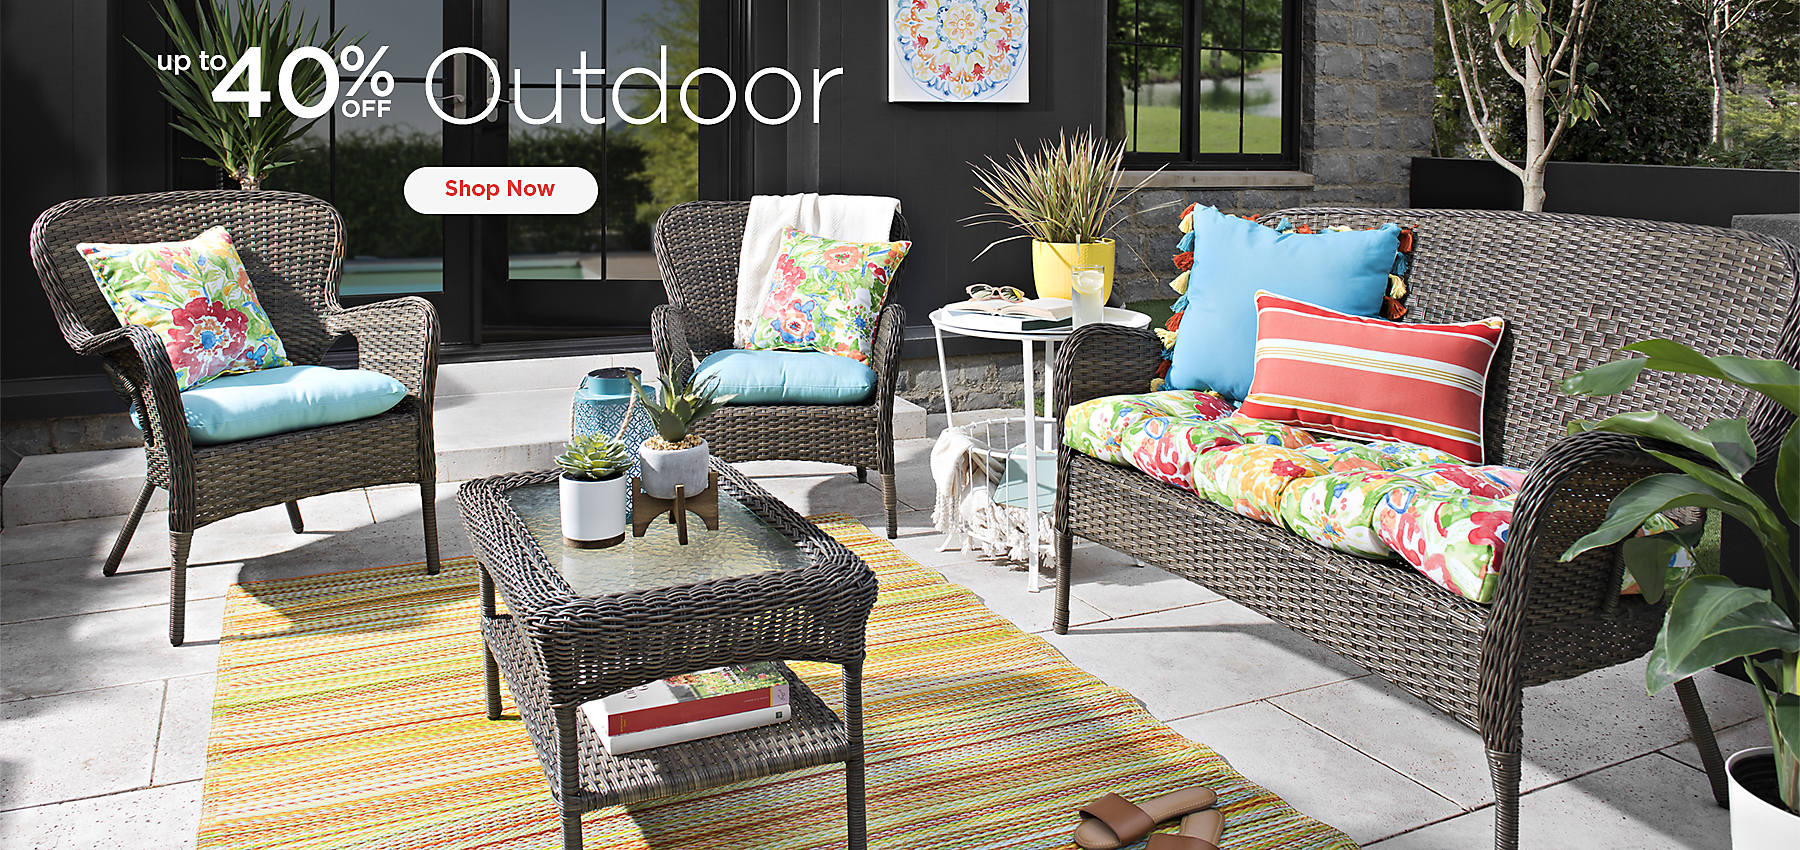 Up to 40% Off Outdoor - Shop Now